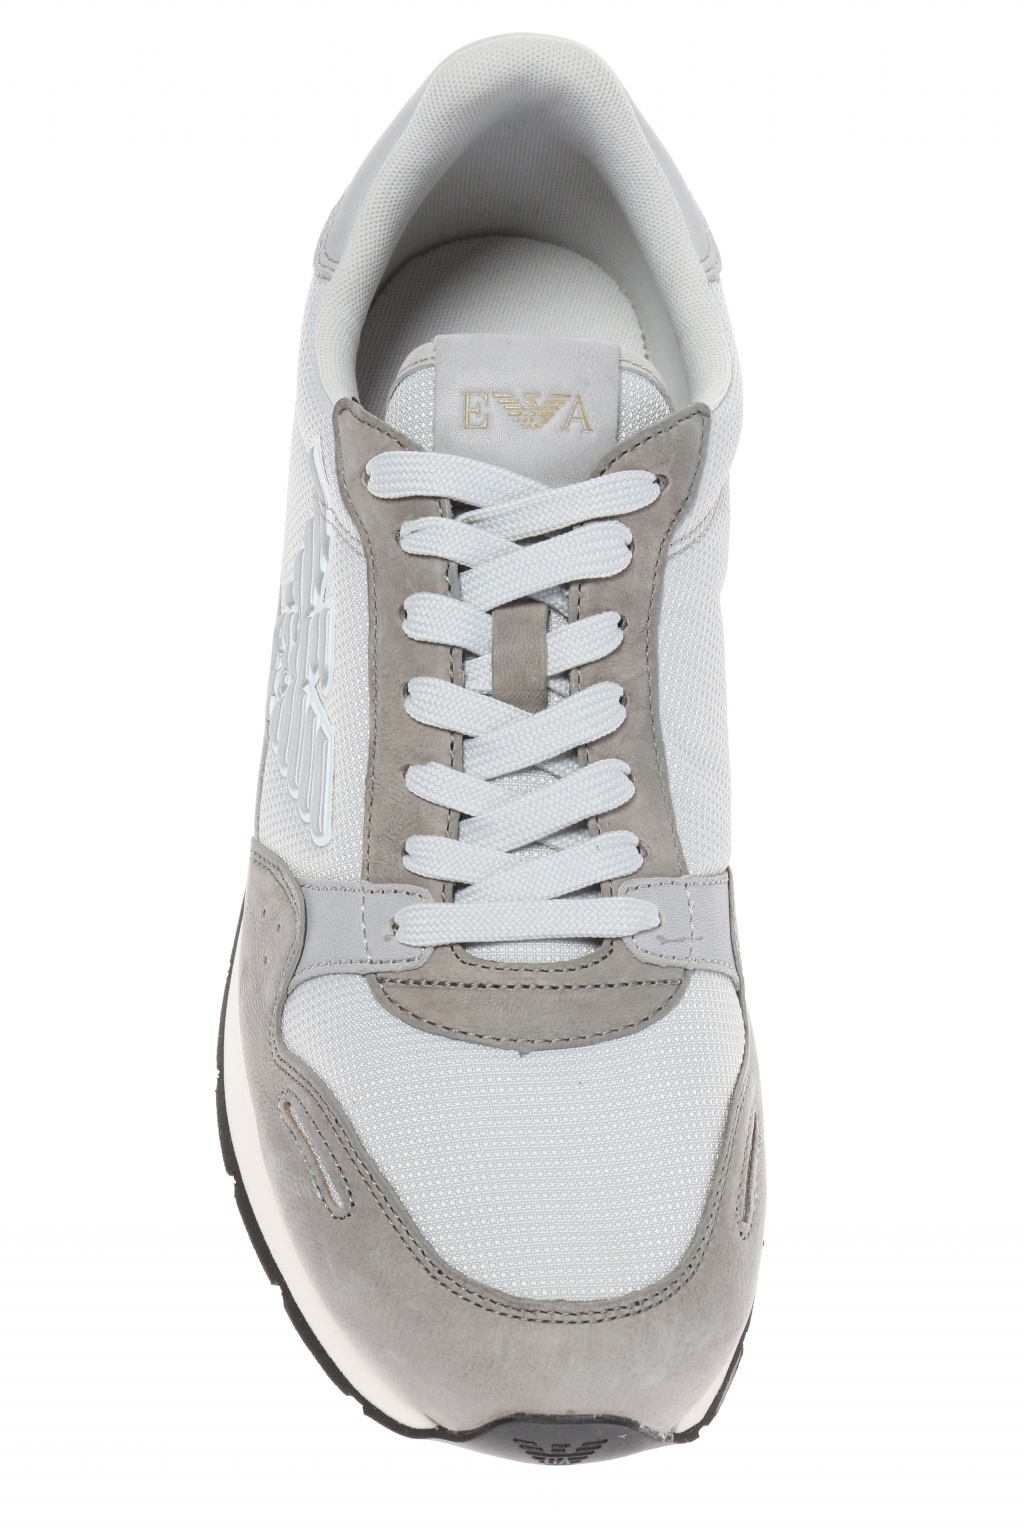 Emporio Armani Lace-up logo sneakers